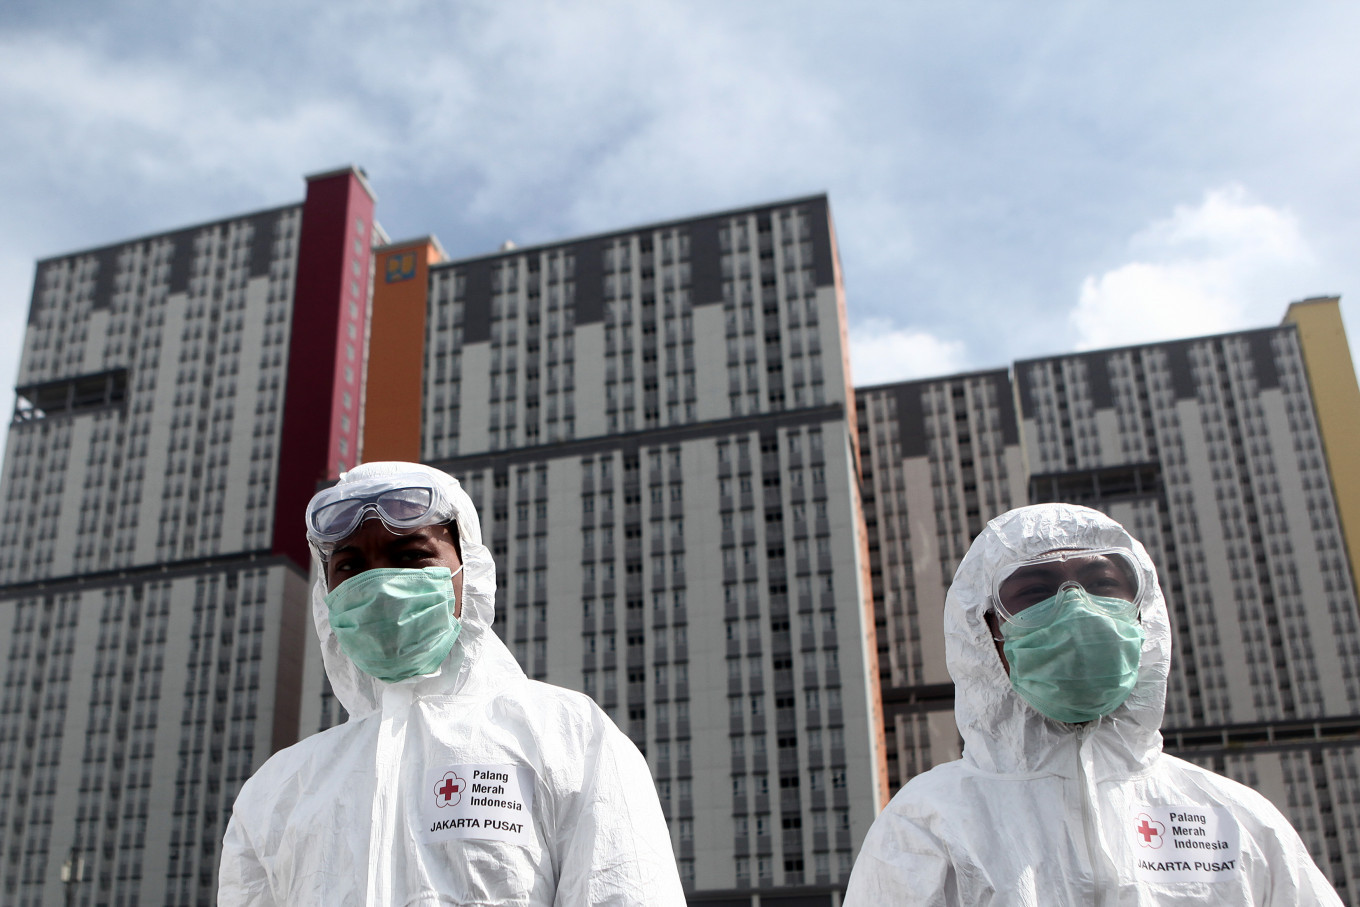 Indonesia was in denial over coronavirus. Now it may be facing a looming disaster